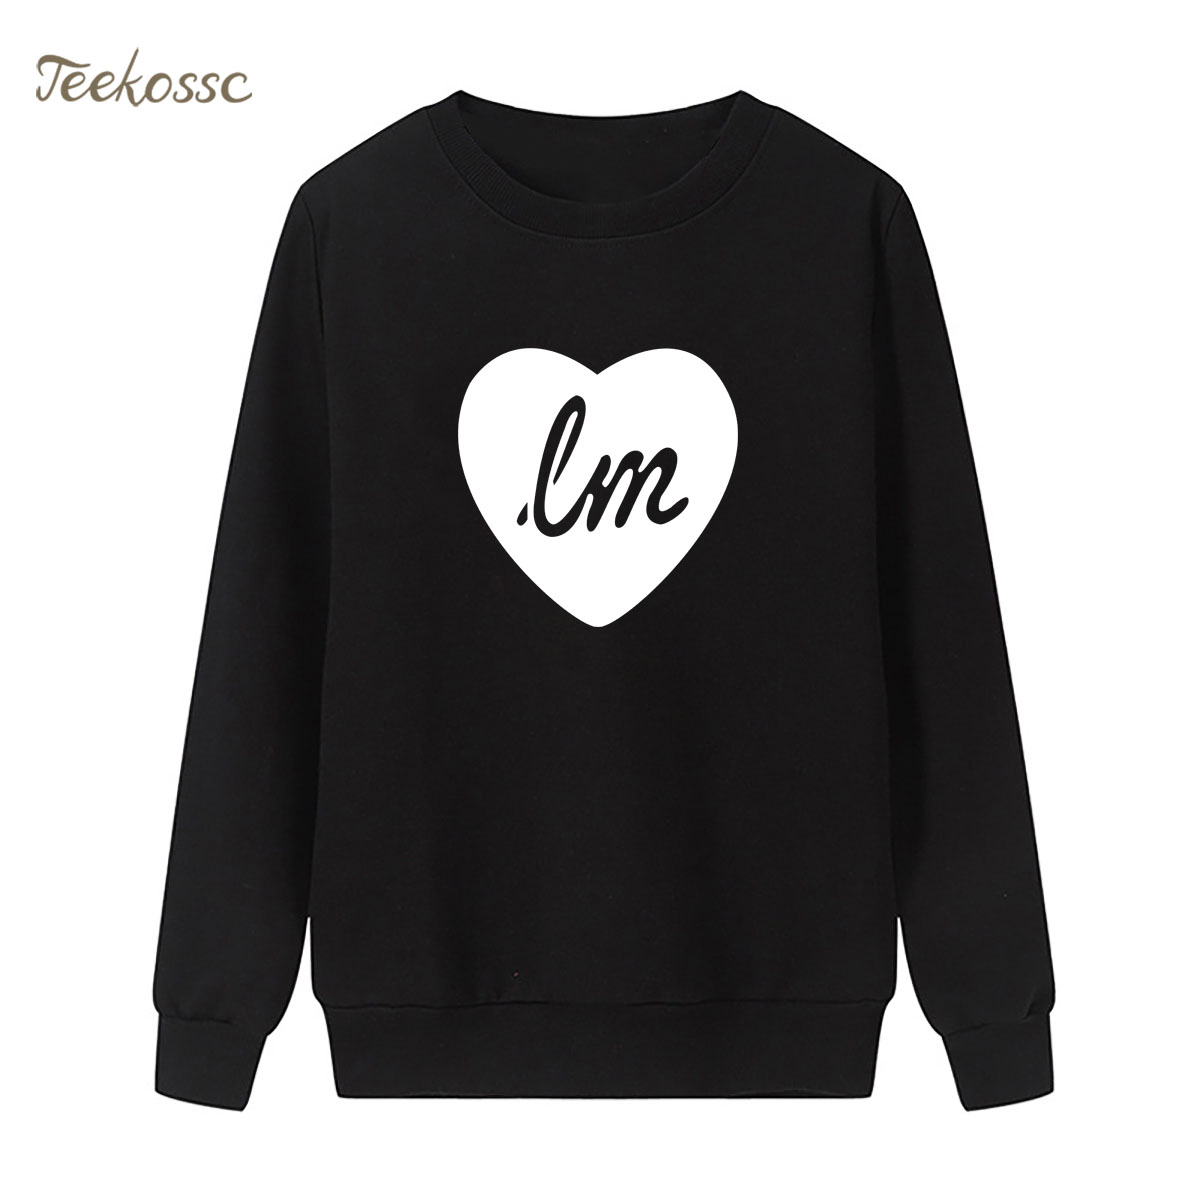 LITTLE MIX LOVE HEART Sweatshirt Cute Hoodie 2018 New Brand Winter Autumn Women Lasdies Pullover Loose Fleece Hipster Sportswear